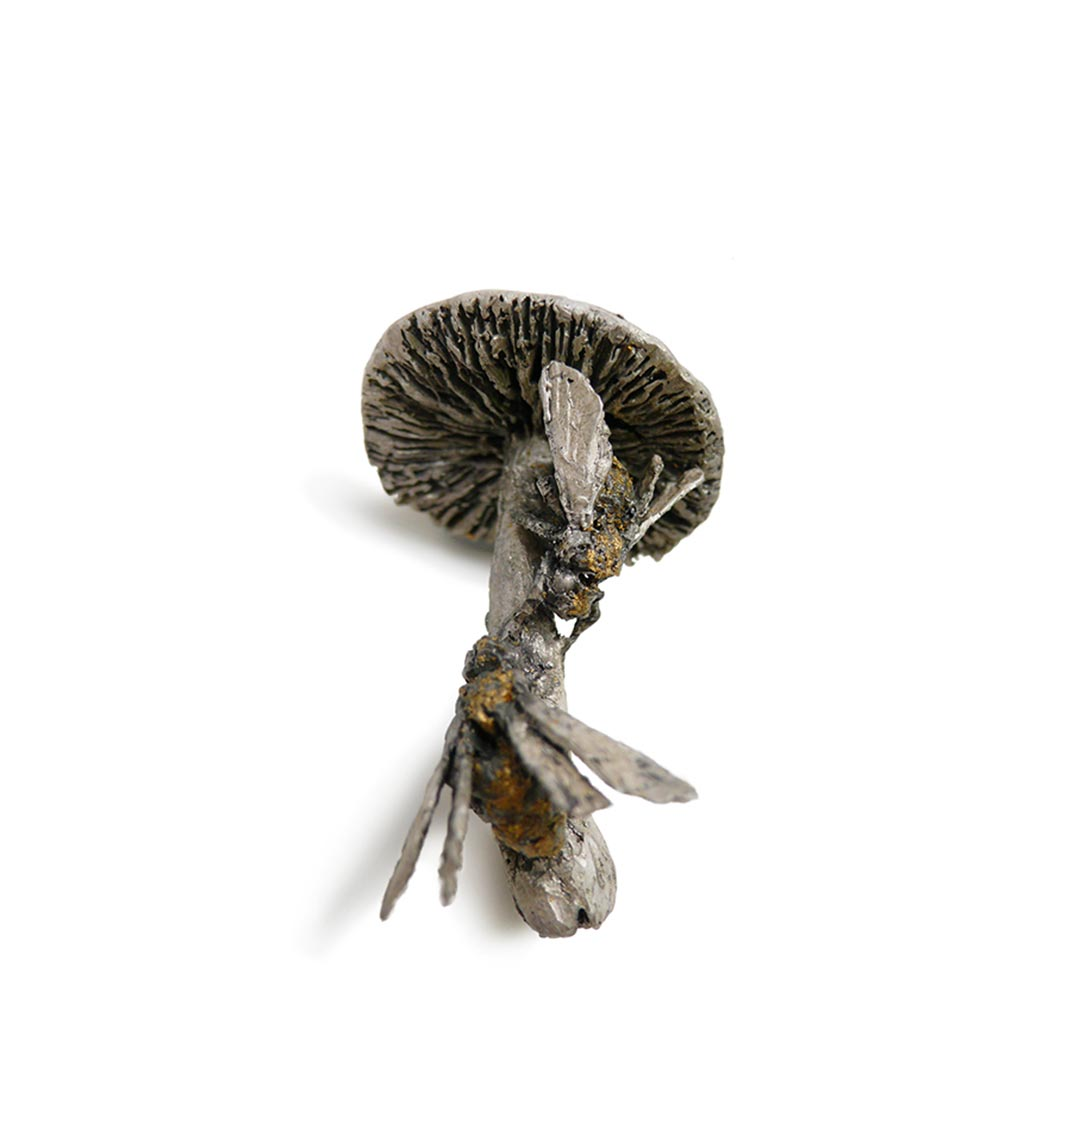 bees on mushroom hollow, 2011, brooch, sterling silver, oil paint, gold leaf, gold - photo: mielle harvey